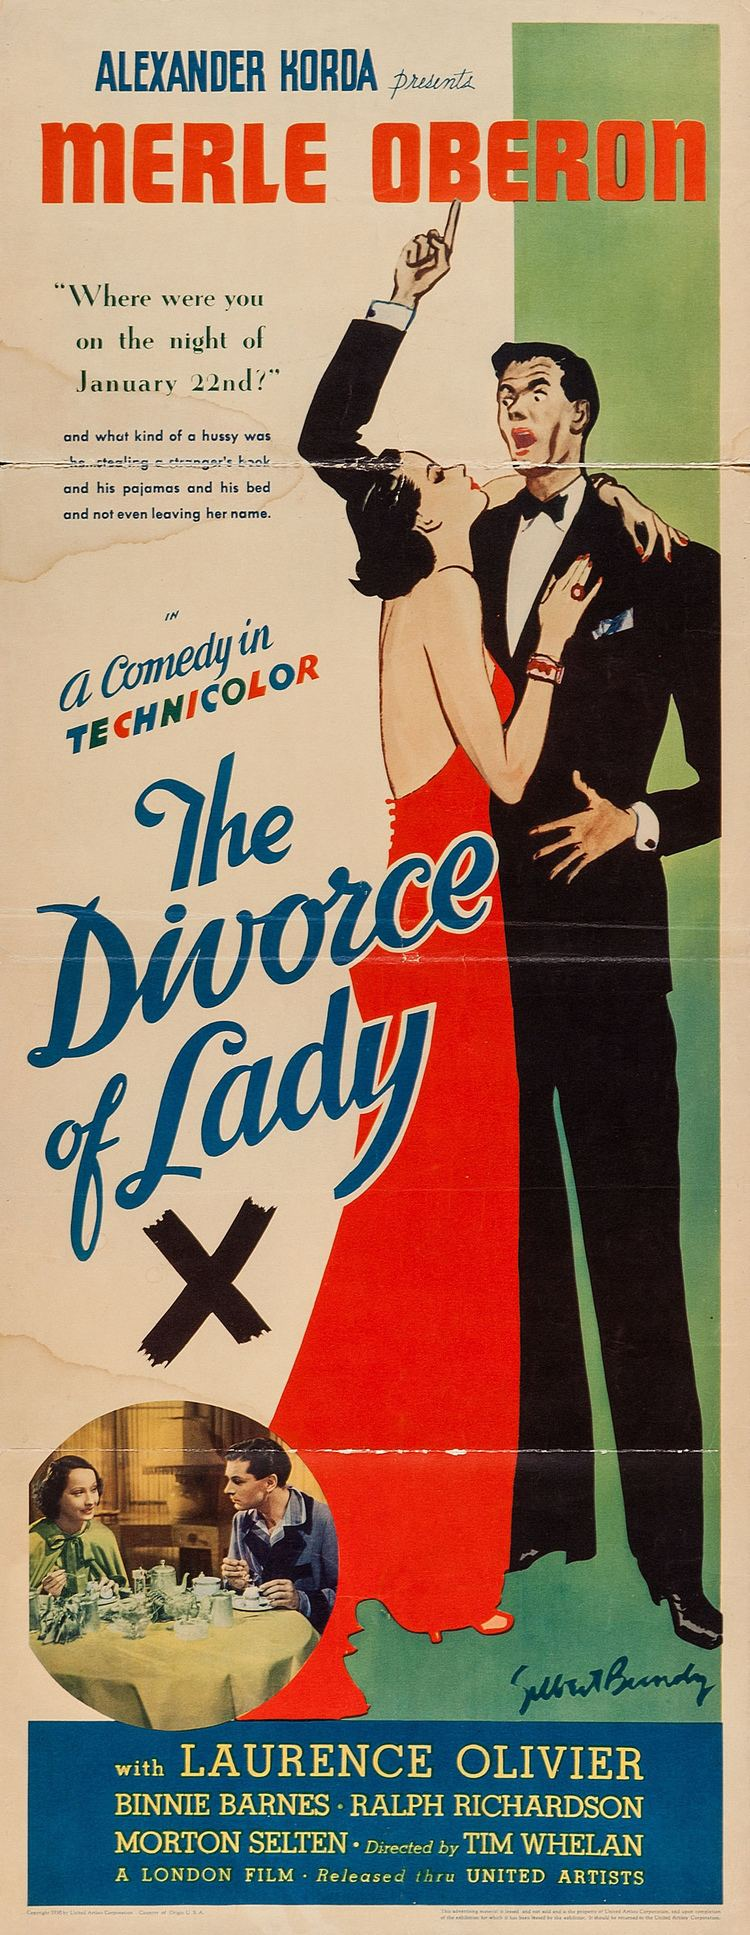 The Divorce of Lady X Divorce of Lady X The